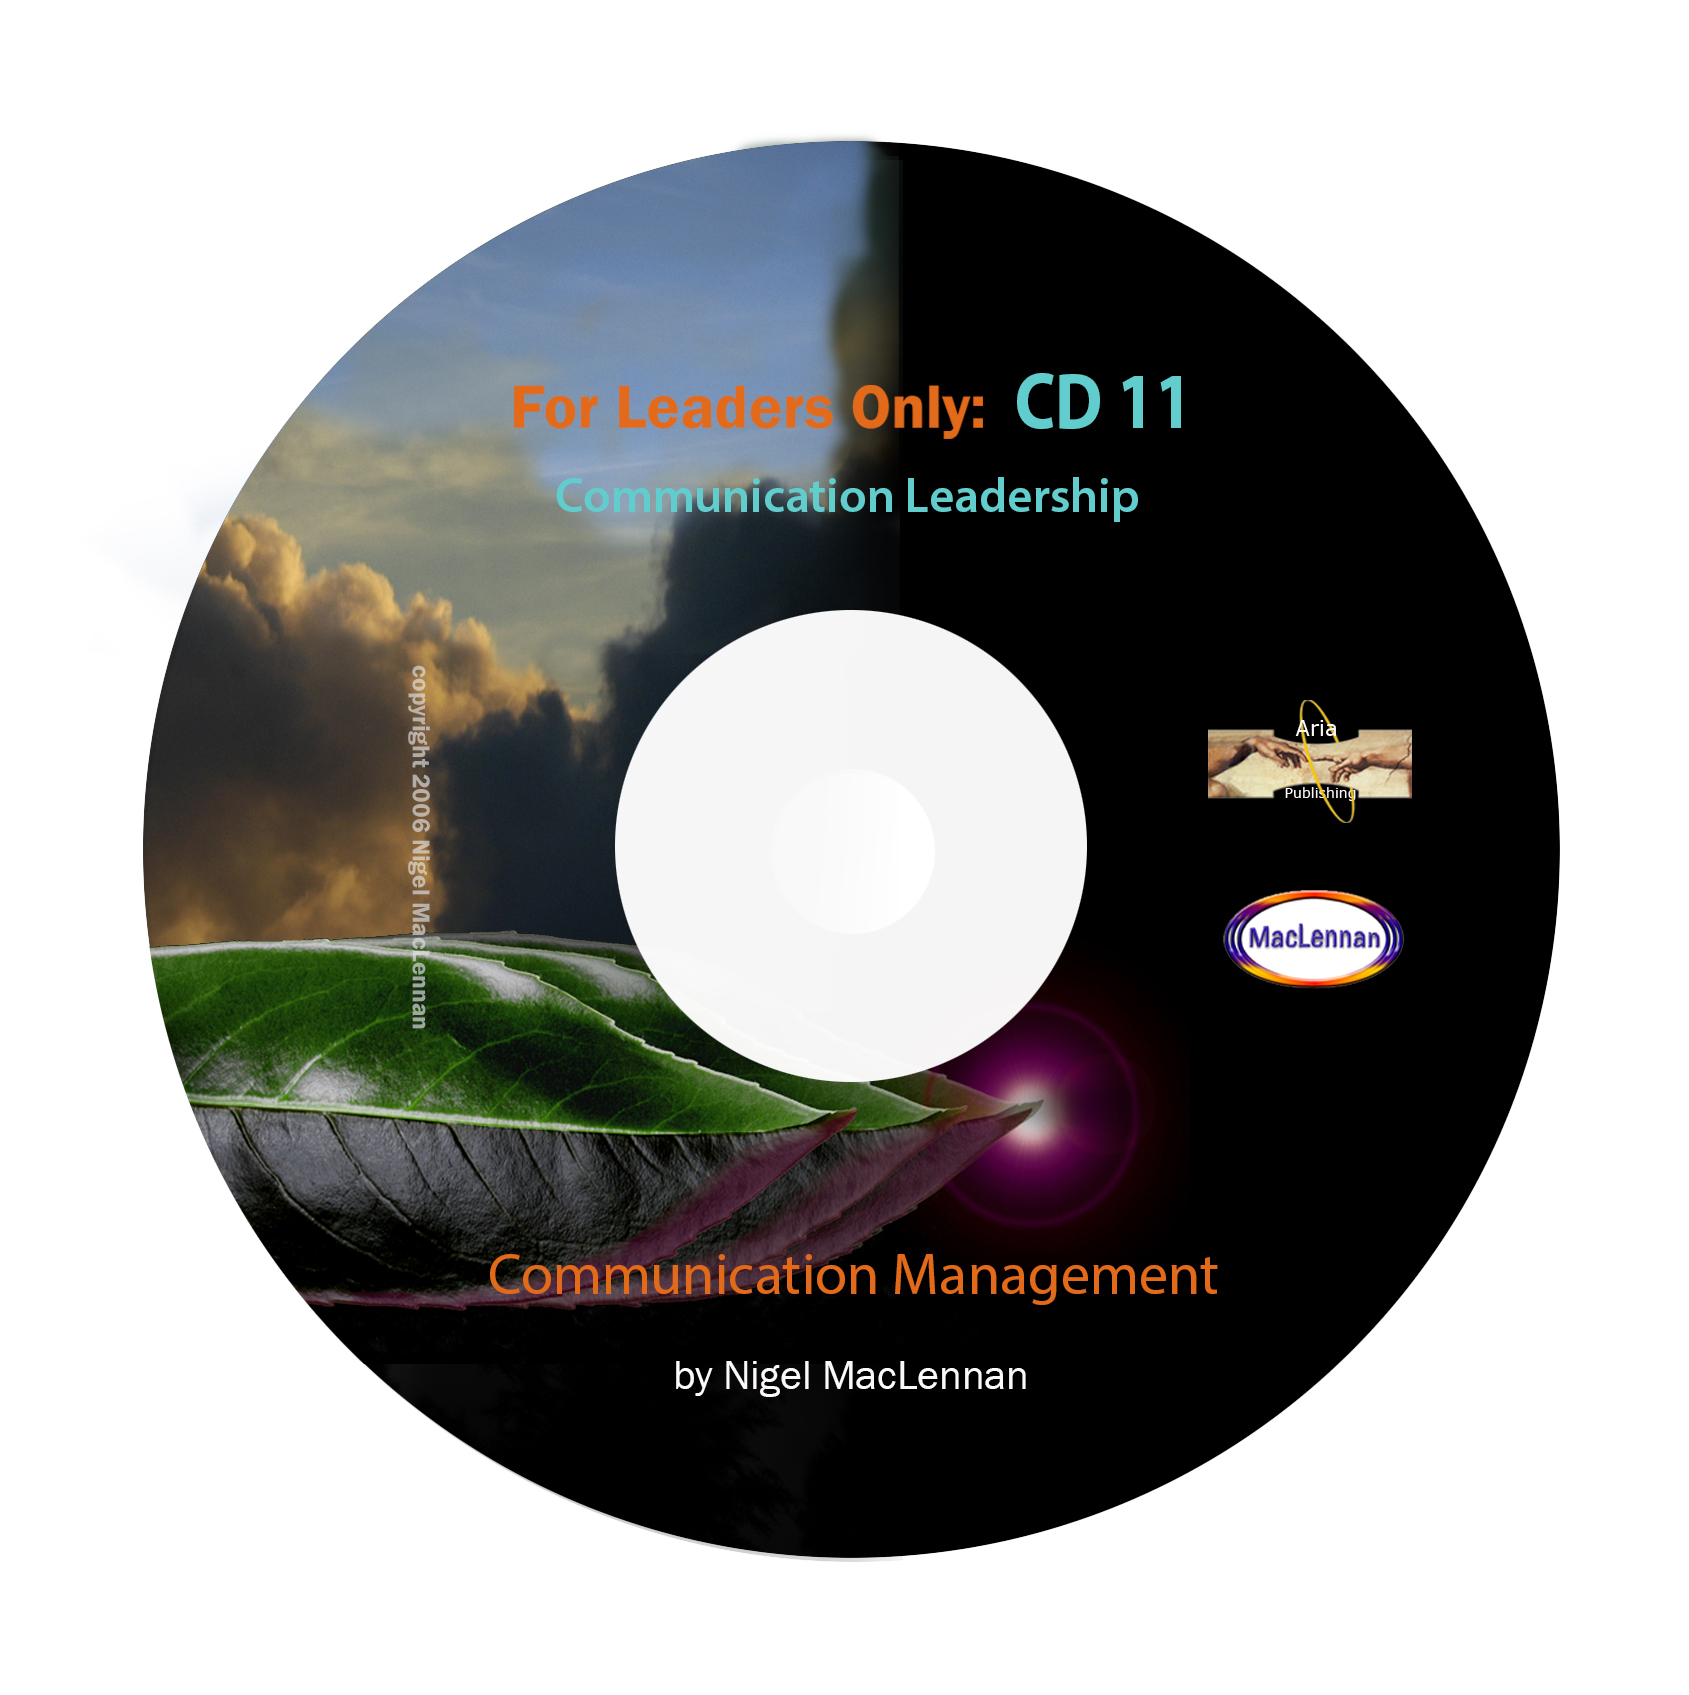 For Leaders Only - Communication Management CD